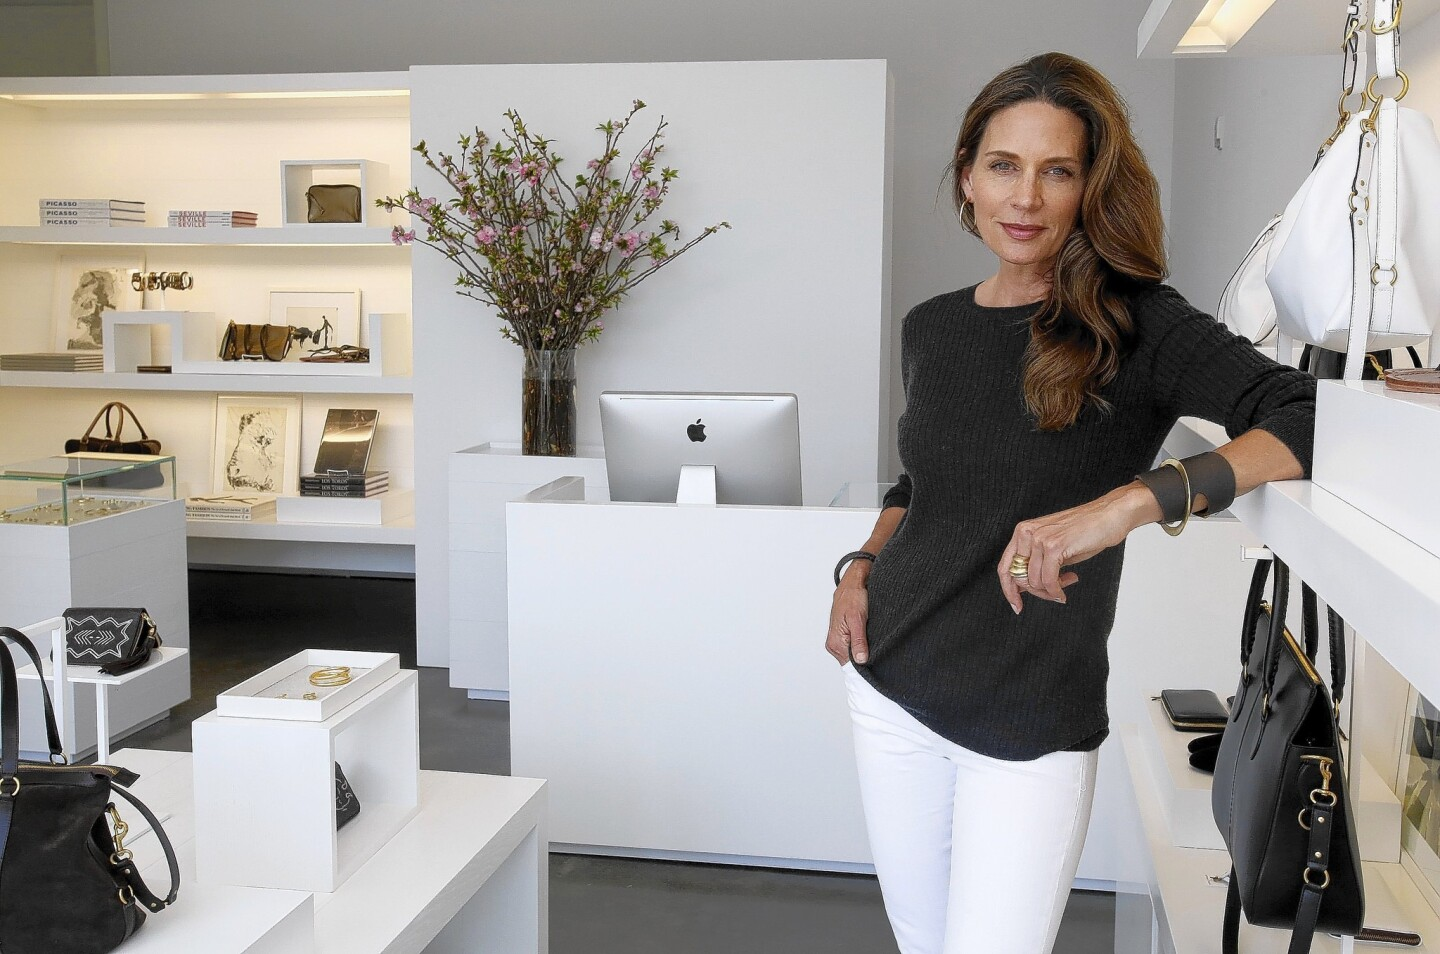 Fashion designer Kendall Conrad, who made her mark in handbags, is expanding into footwear and brass jewelry.